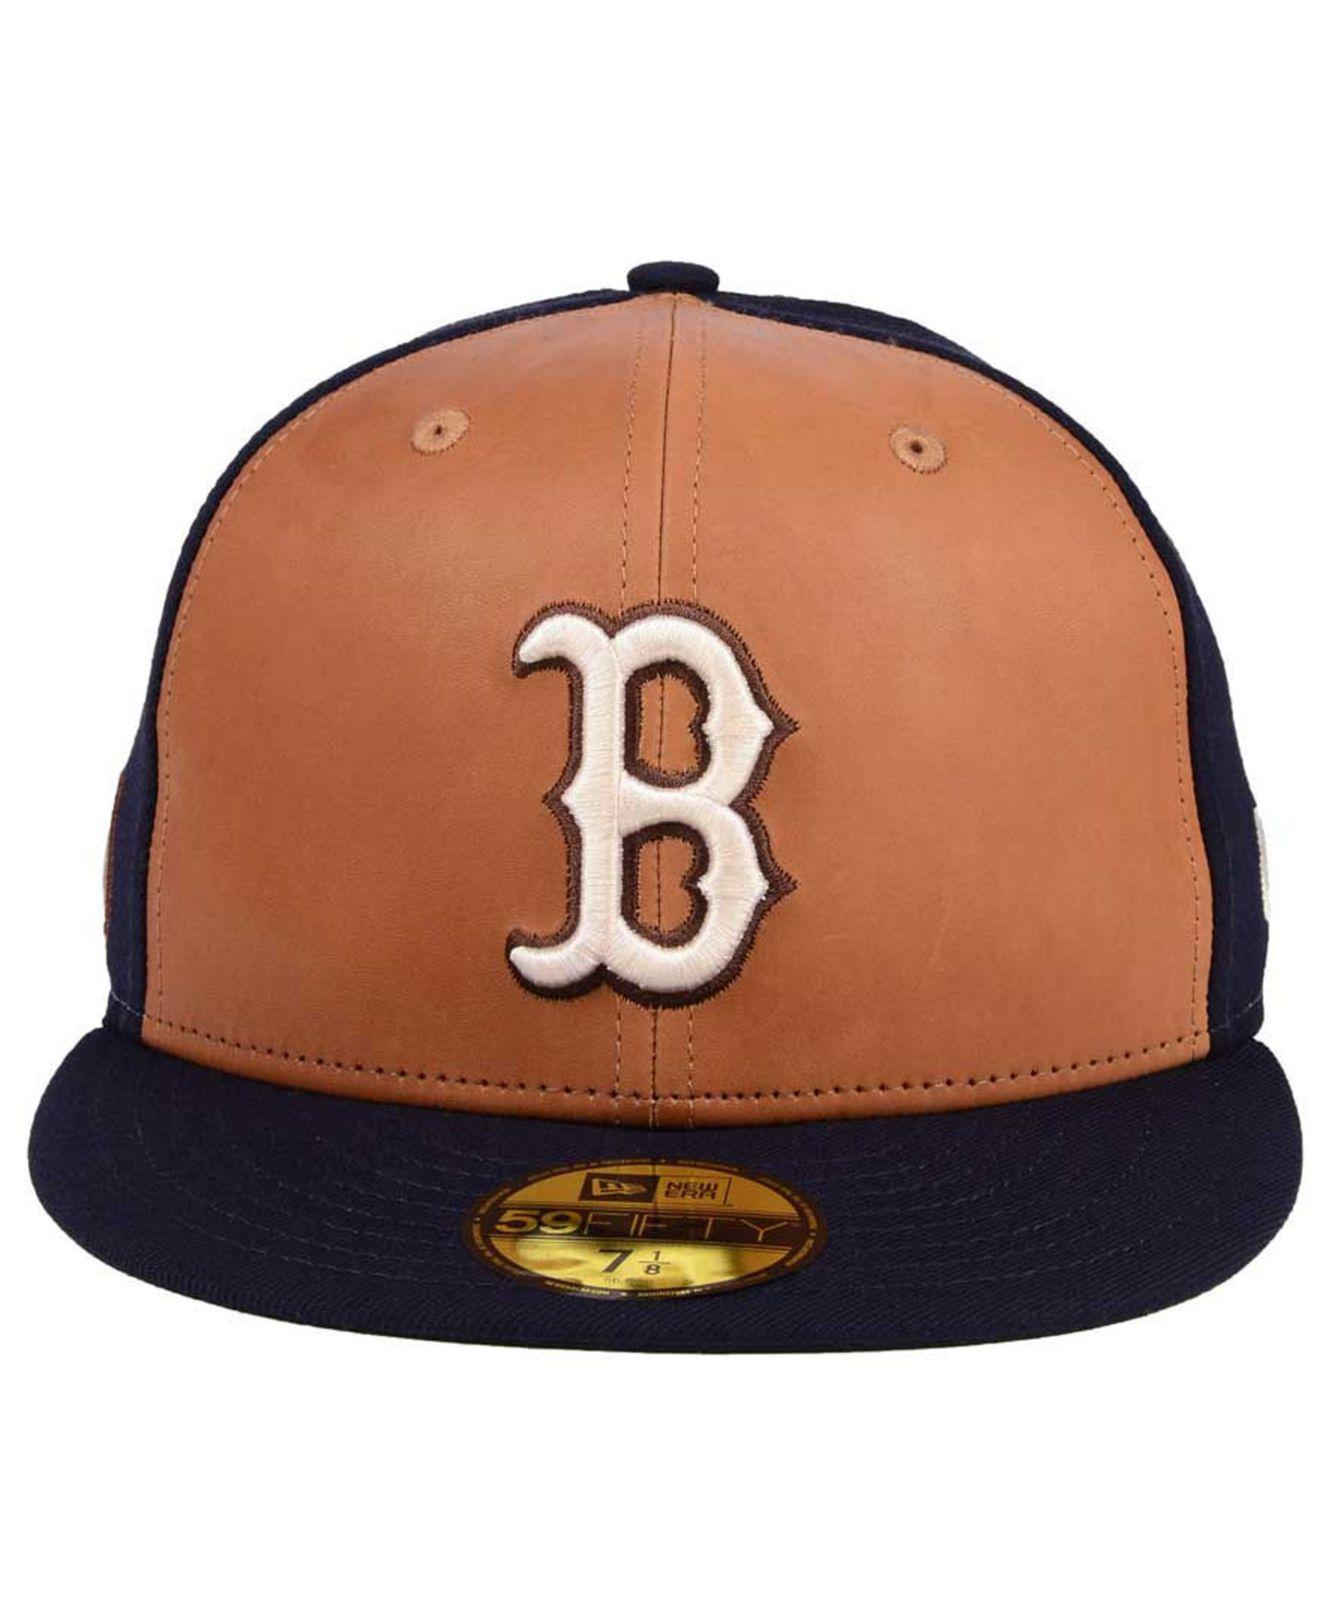 cheaper 82a4d 7822d ... best price lyst ktz boston red sox x wilson leather front 59fifty  fitted cap in blue